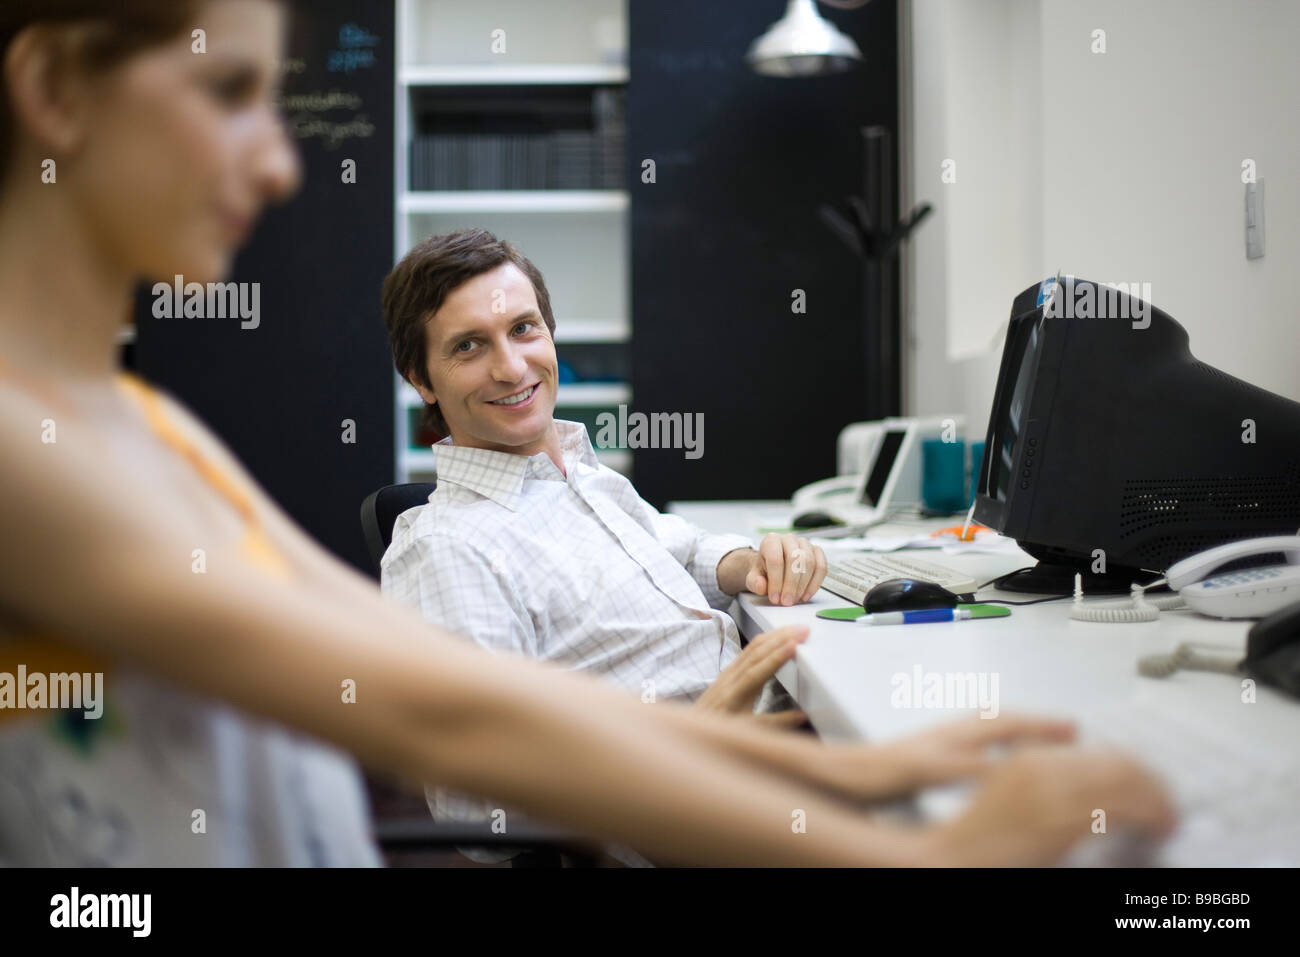 Man sitting at desk, smiling at female colleague - Stock Image